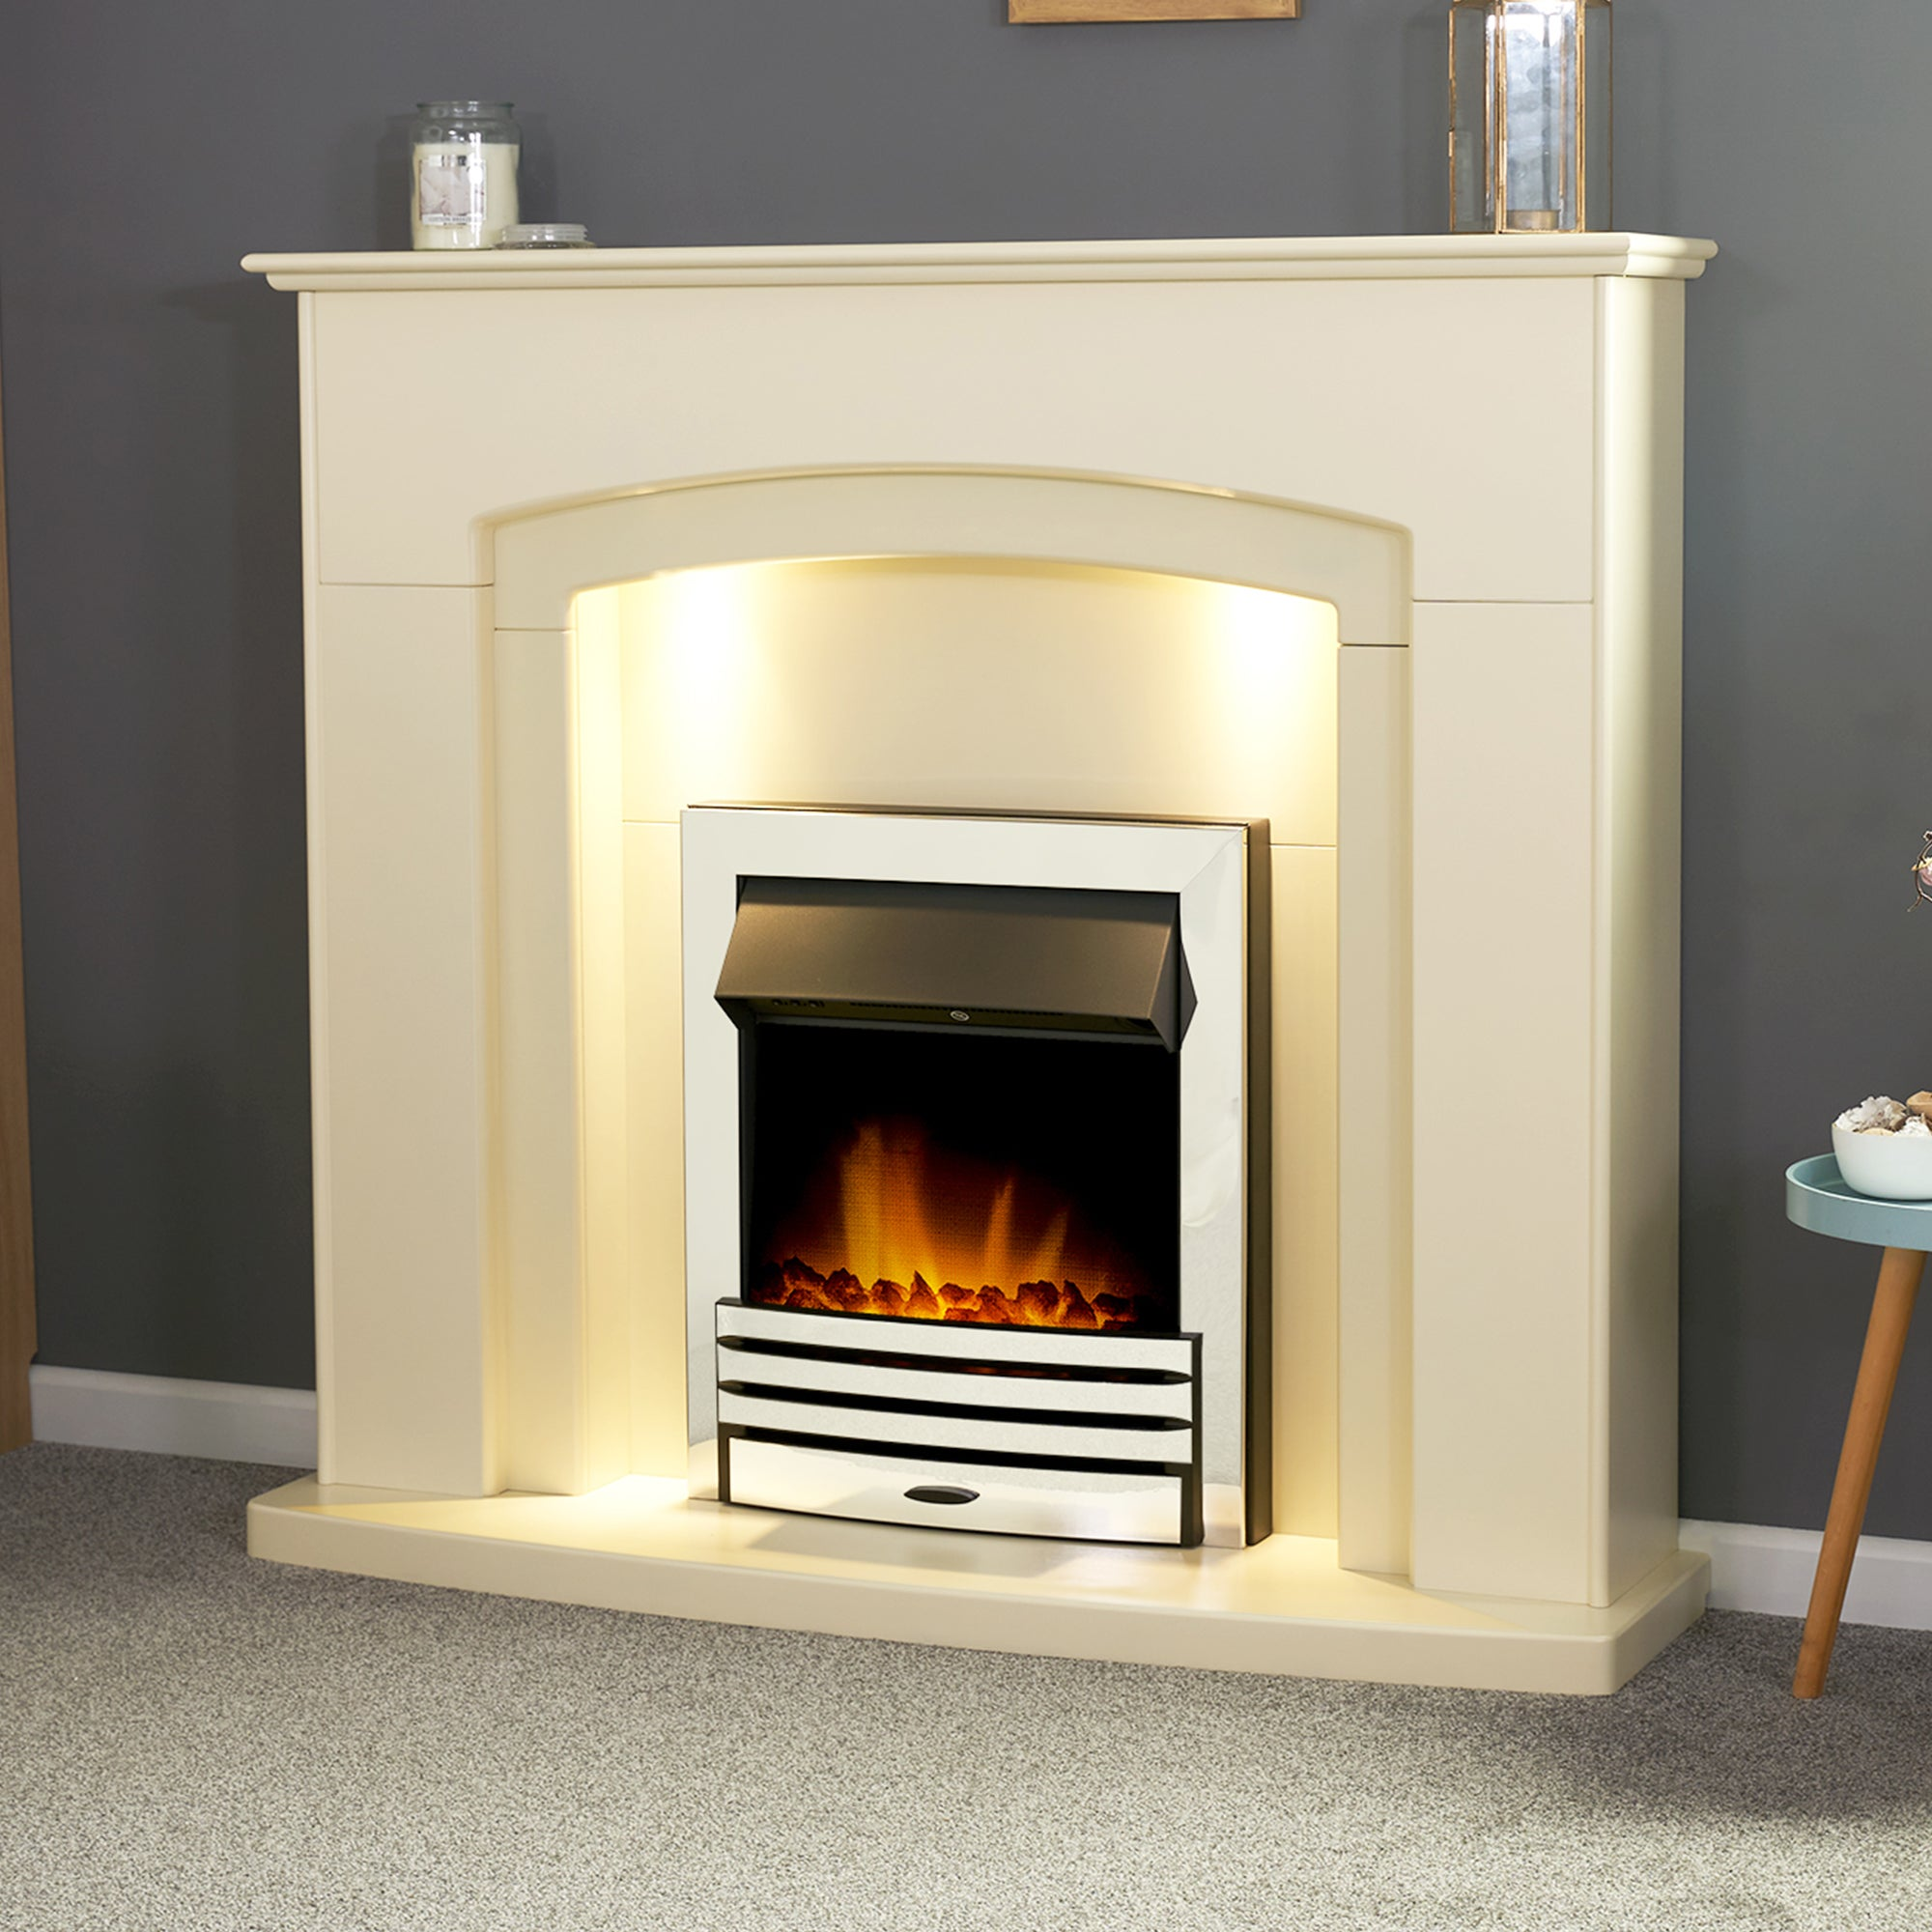 Falmouth Stone Effect Fireplace Suite with Eclipse Chrome Electric Fire Cream (Natural)